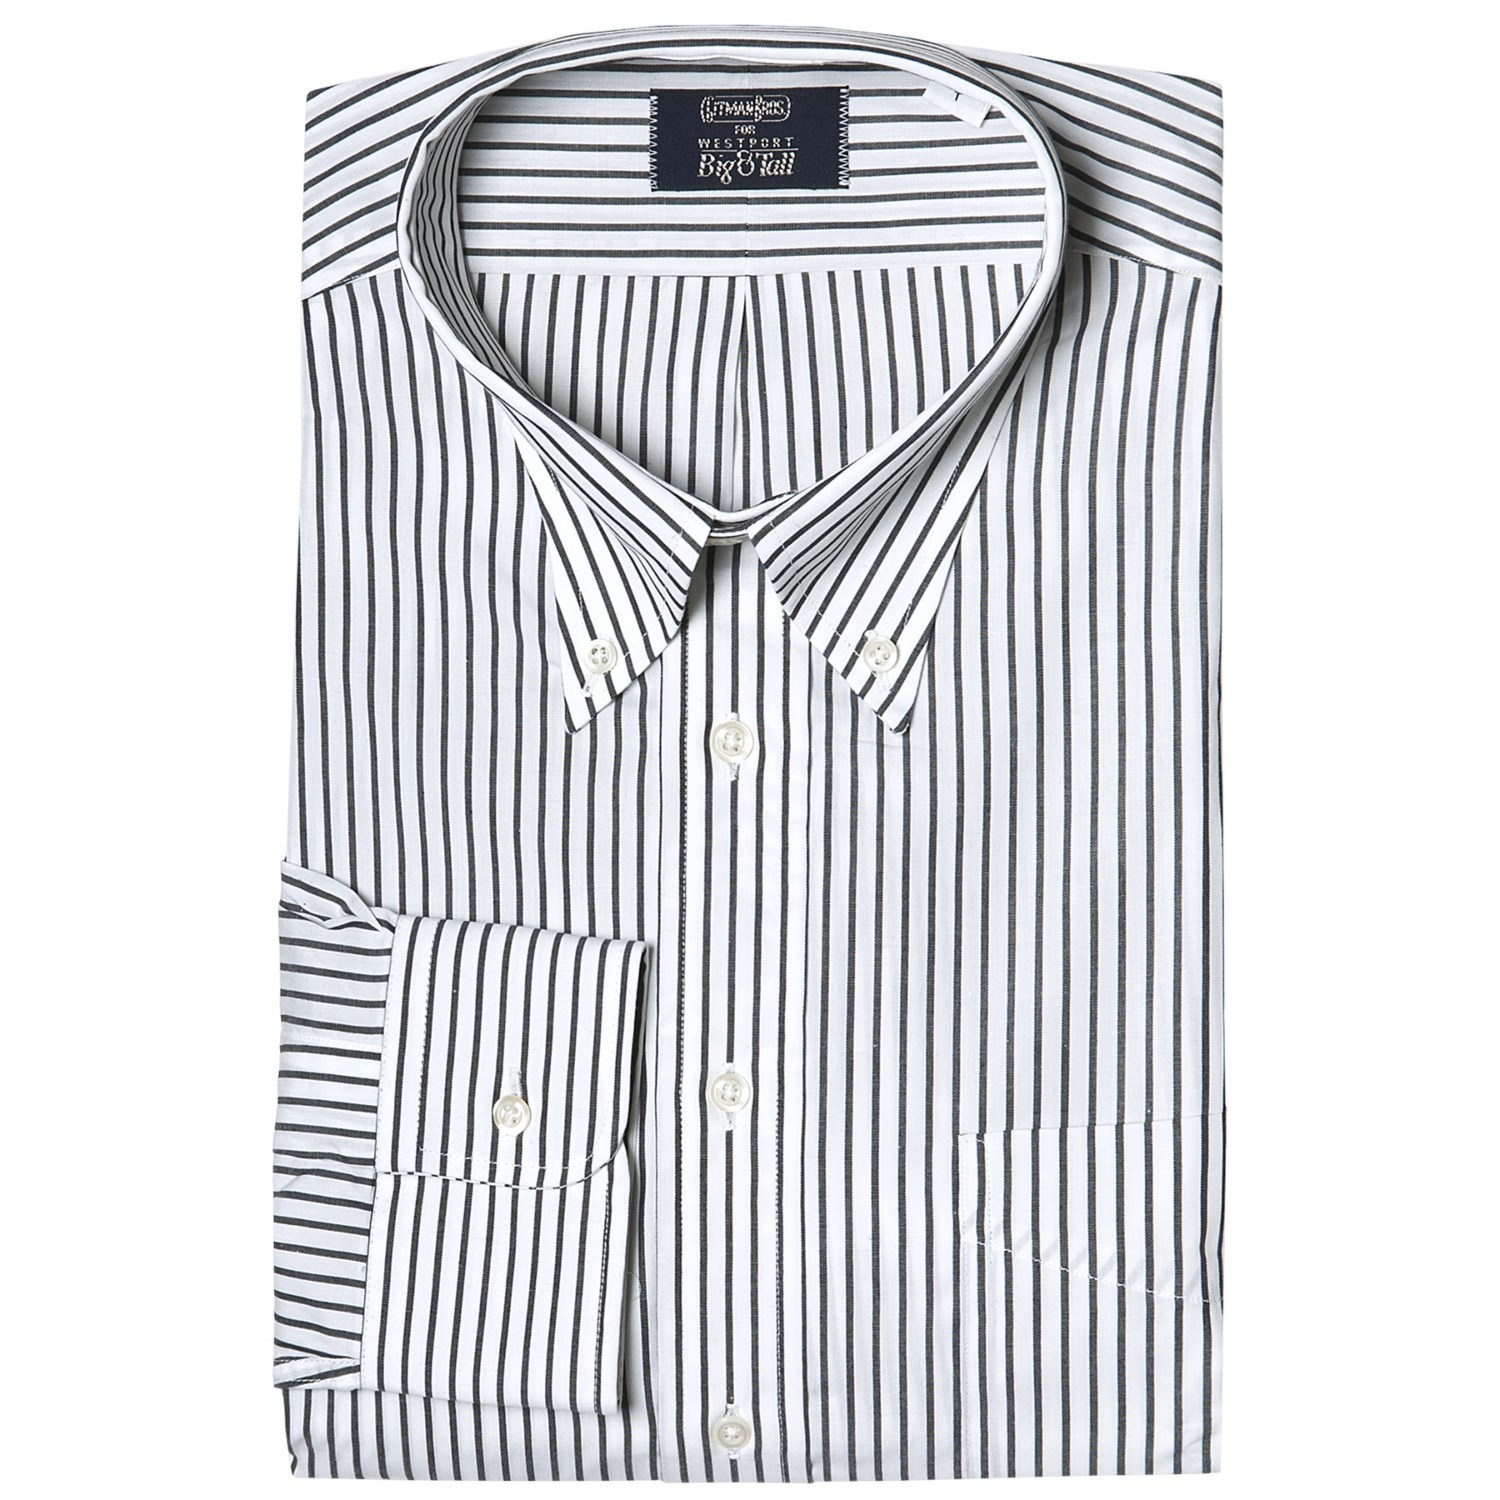 Gitman brothers stripe button down dress shirt long for Design your own t shirt big and tall